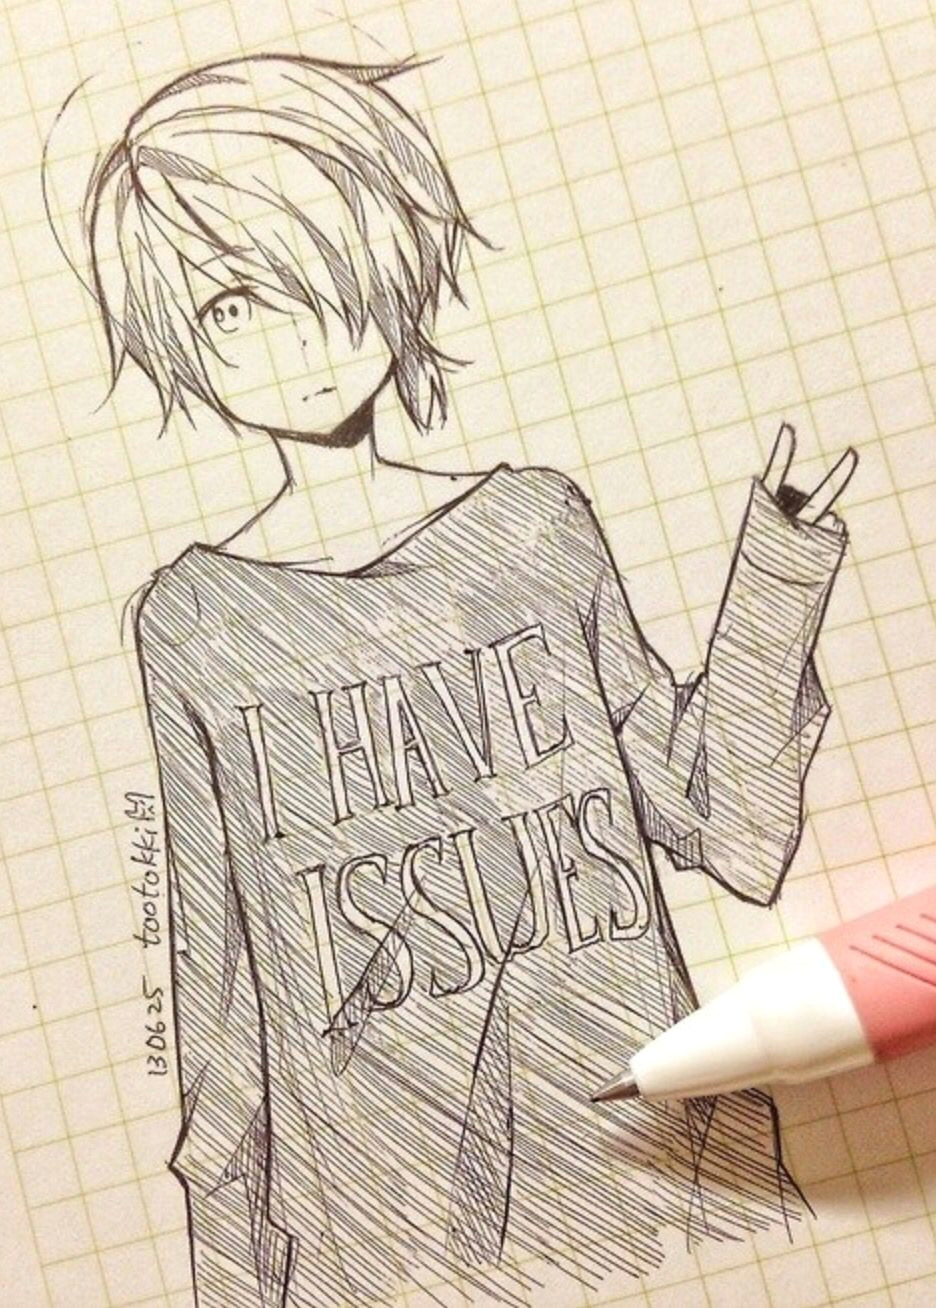 Drawing Anime Not Cute Anime Drawing tootokki I Have issues Sweater Anime Drawings